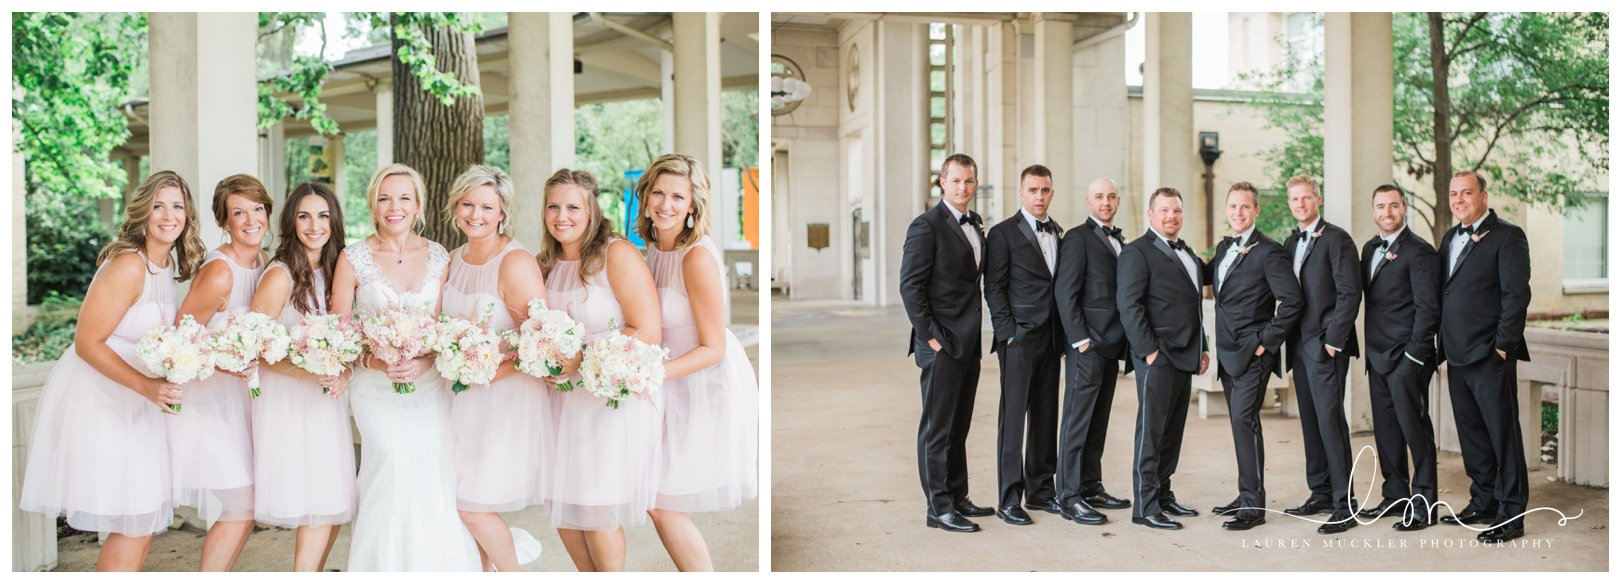 lauren muckler photography_fine art film wedding photography_st louis_photography_0650.jpg